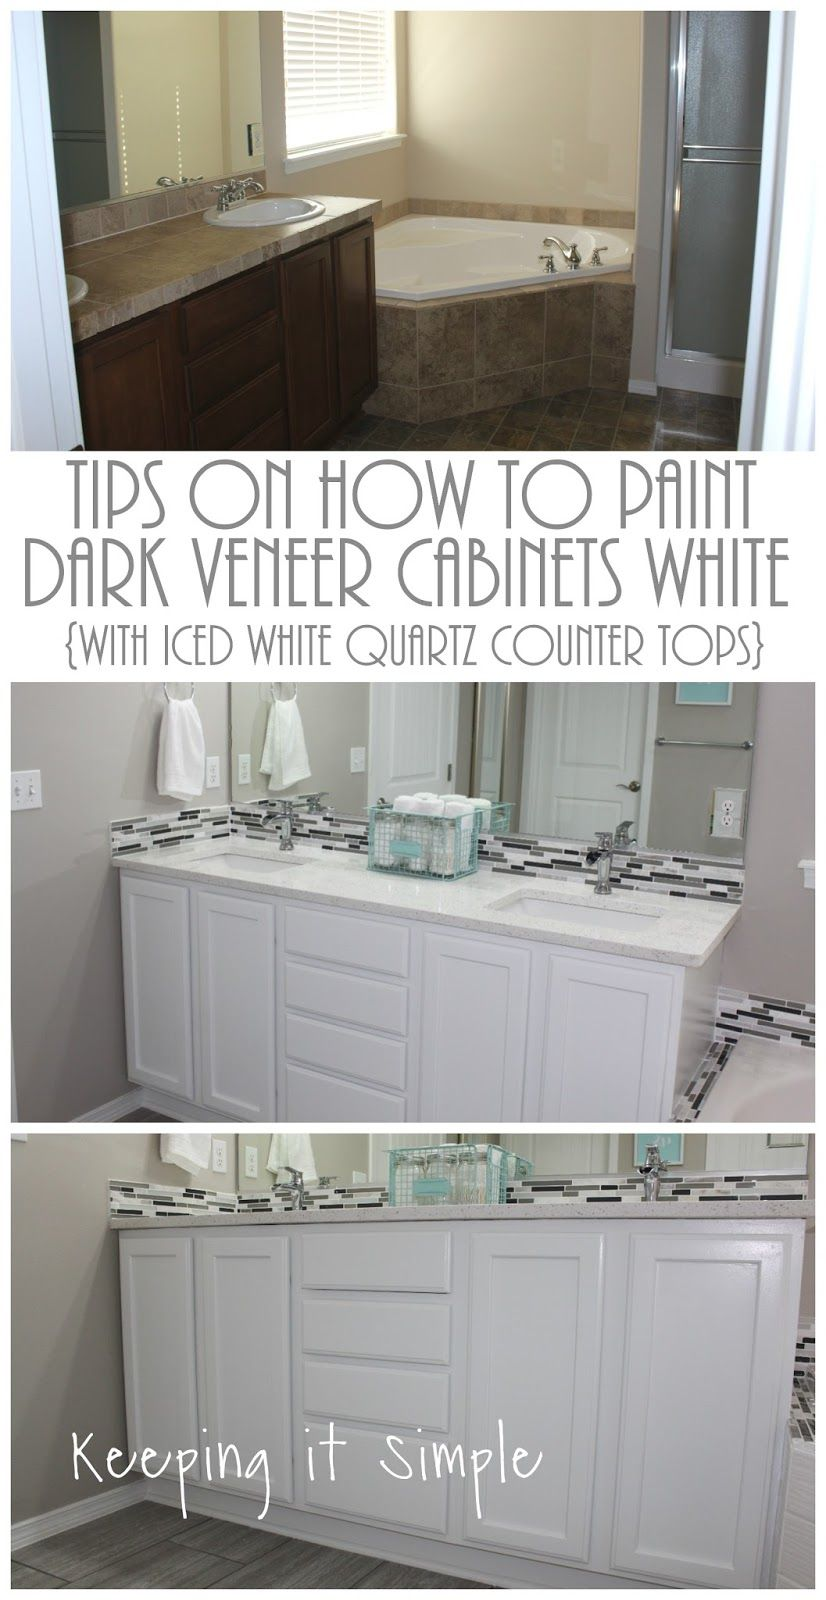 Tips On How To Paint Dark Veneer Cabinets White With Pro Clic And Iced Quartz Counter Tops